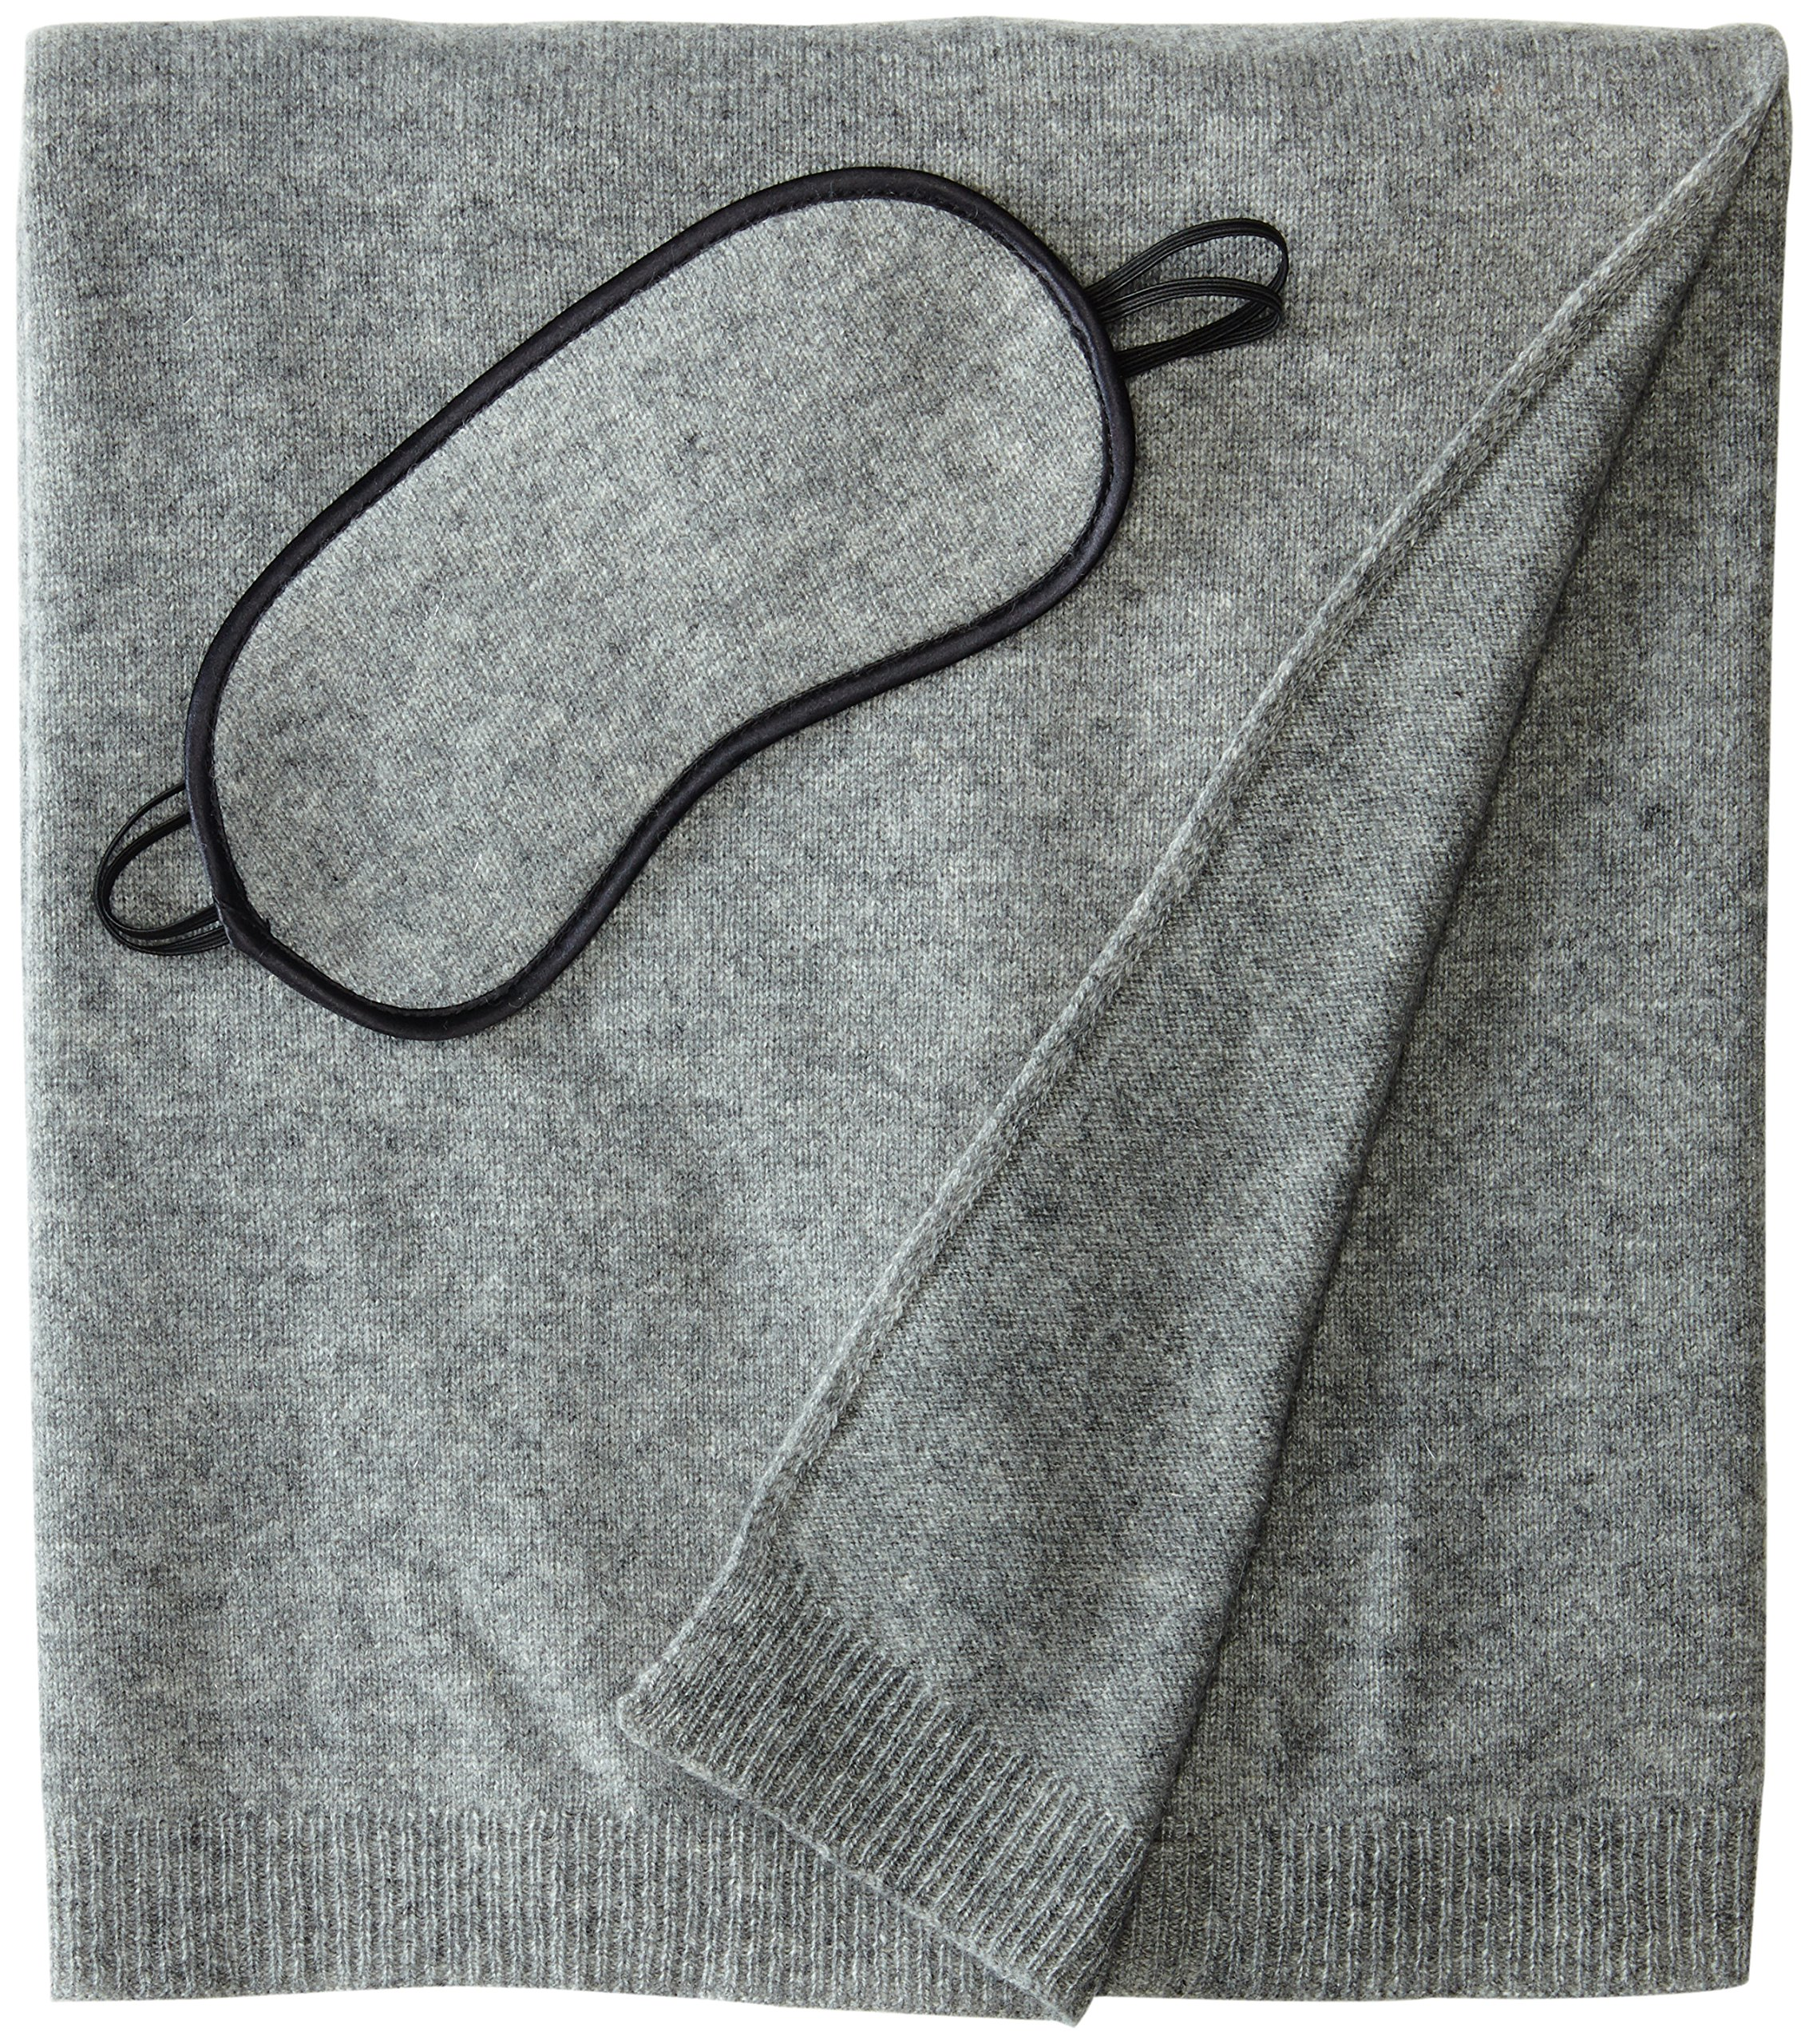 Sofia Cashmere 100% Cashmere Cozy Travel Set with Blanket, Eye Mask, and Bag, Grey, One Size